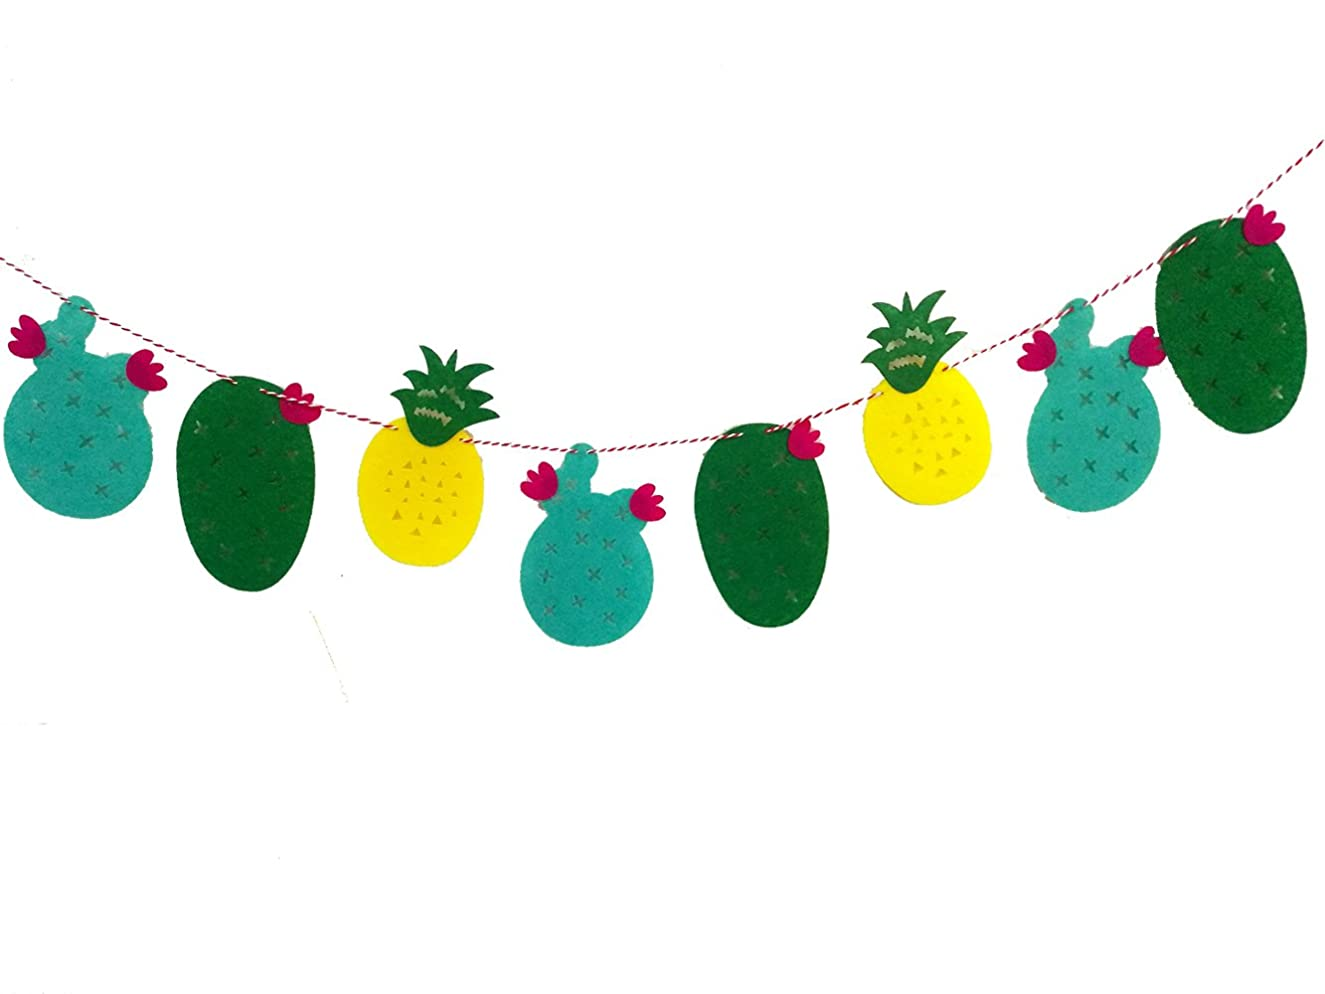 Winterworm Pack of 3 String Hawaiian Luau Flamingo Pineapple Cactus Bunting Tropical Party Decor Banner Tropical Garland (3 Patterns)